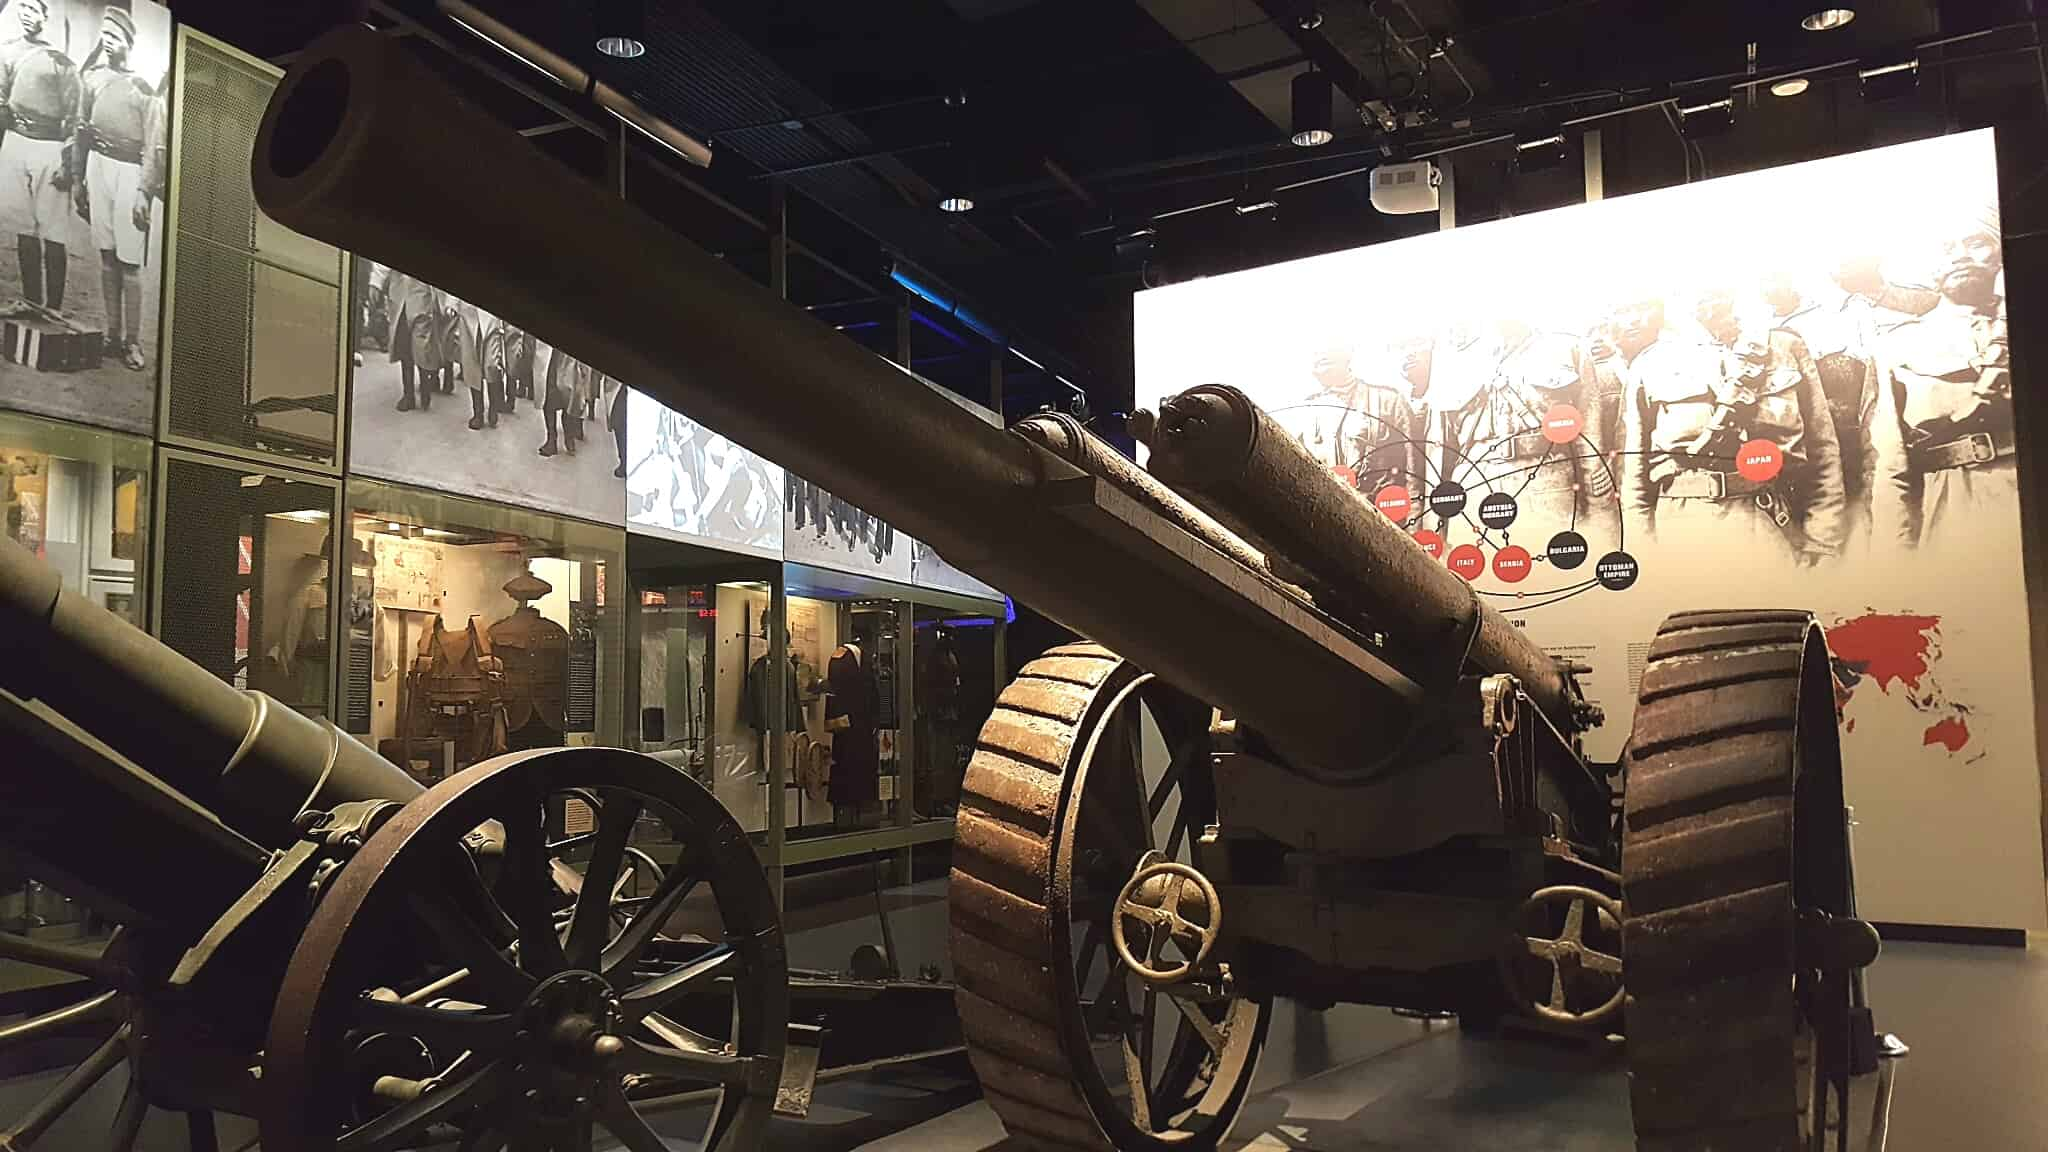 National World War 1 Museum & Memorial - Chasing History in Kansas City, Missouri